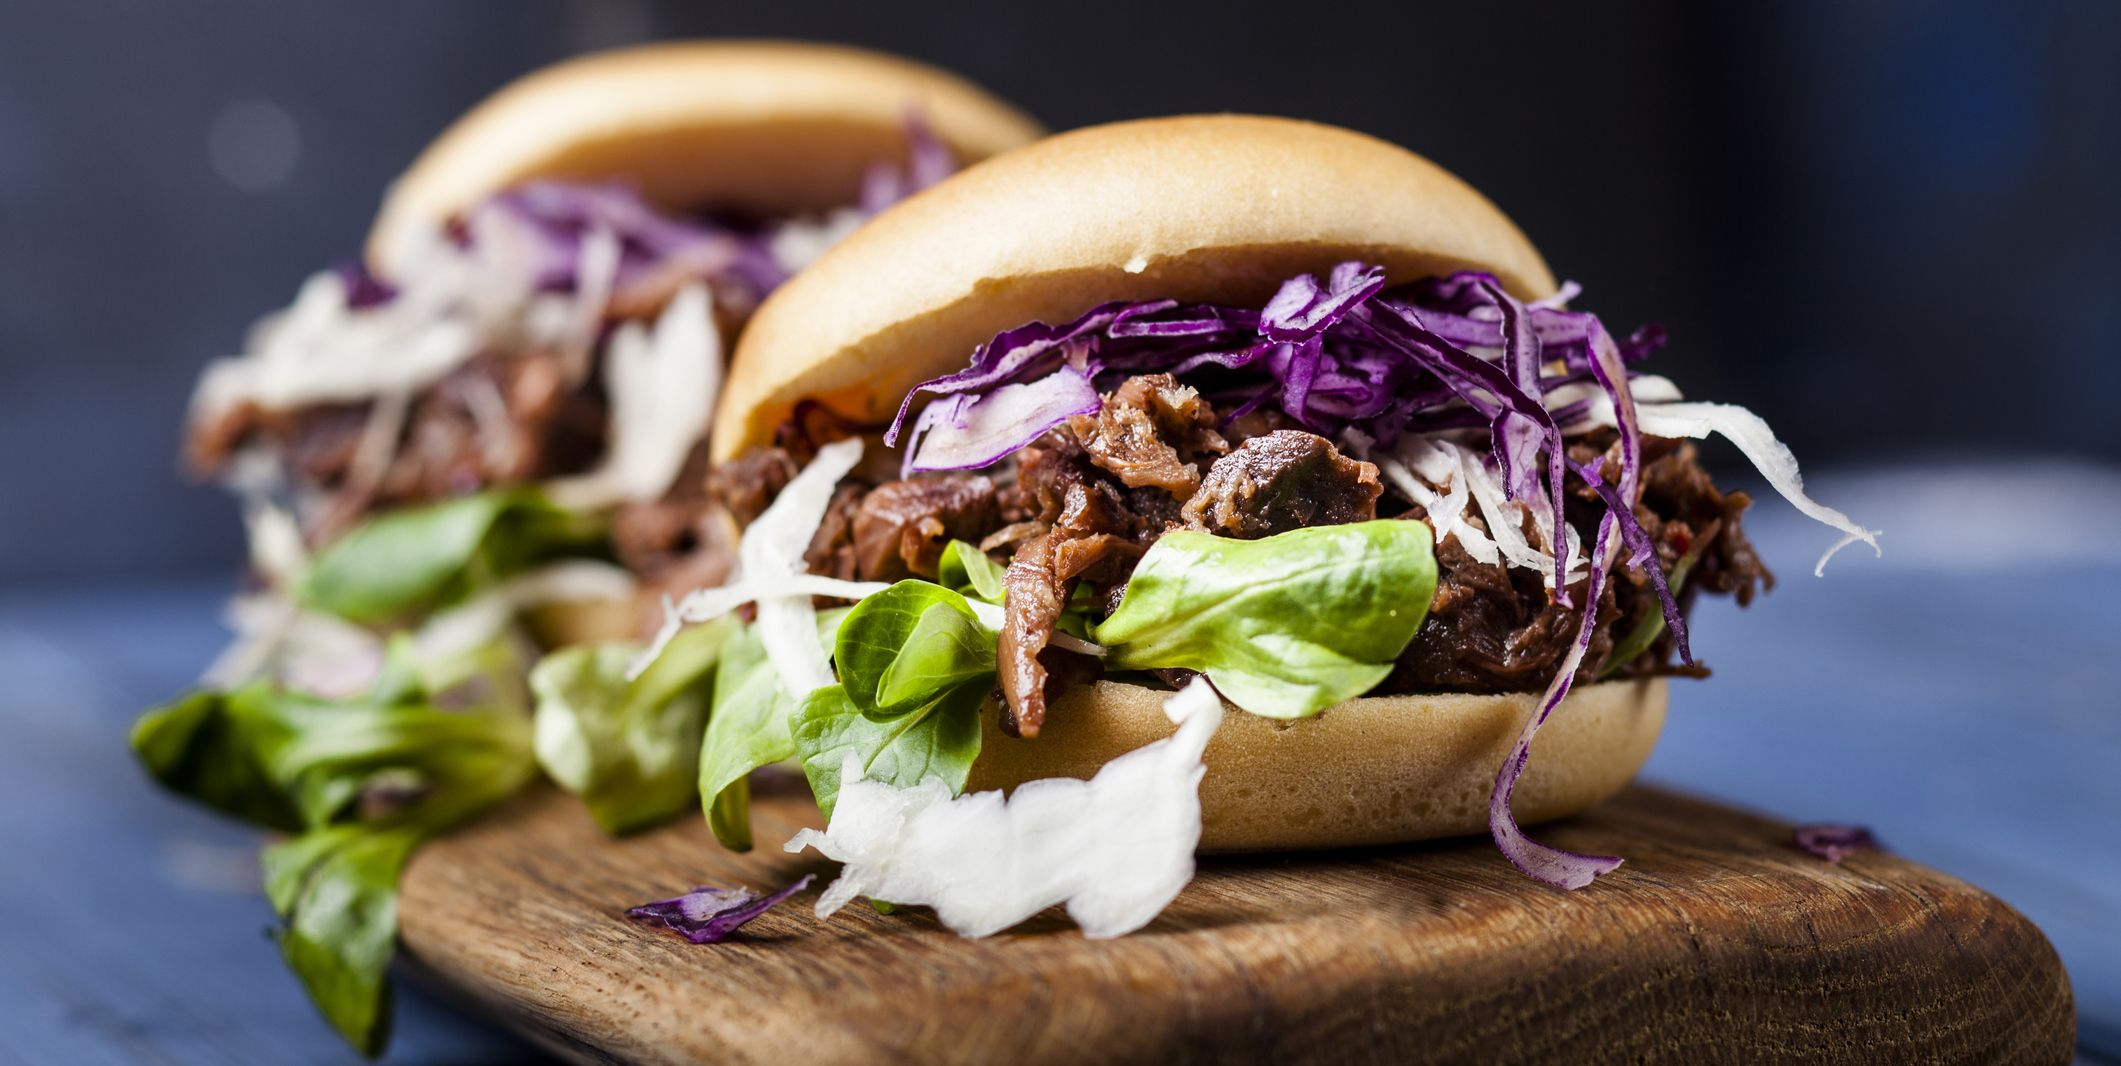 Vegan jackfruit jurger with red cabbage, white cabbage, lamb's lettuce